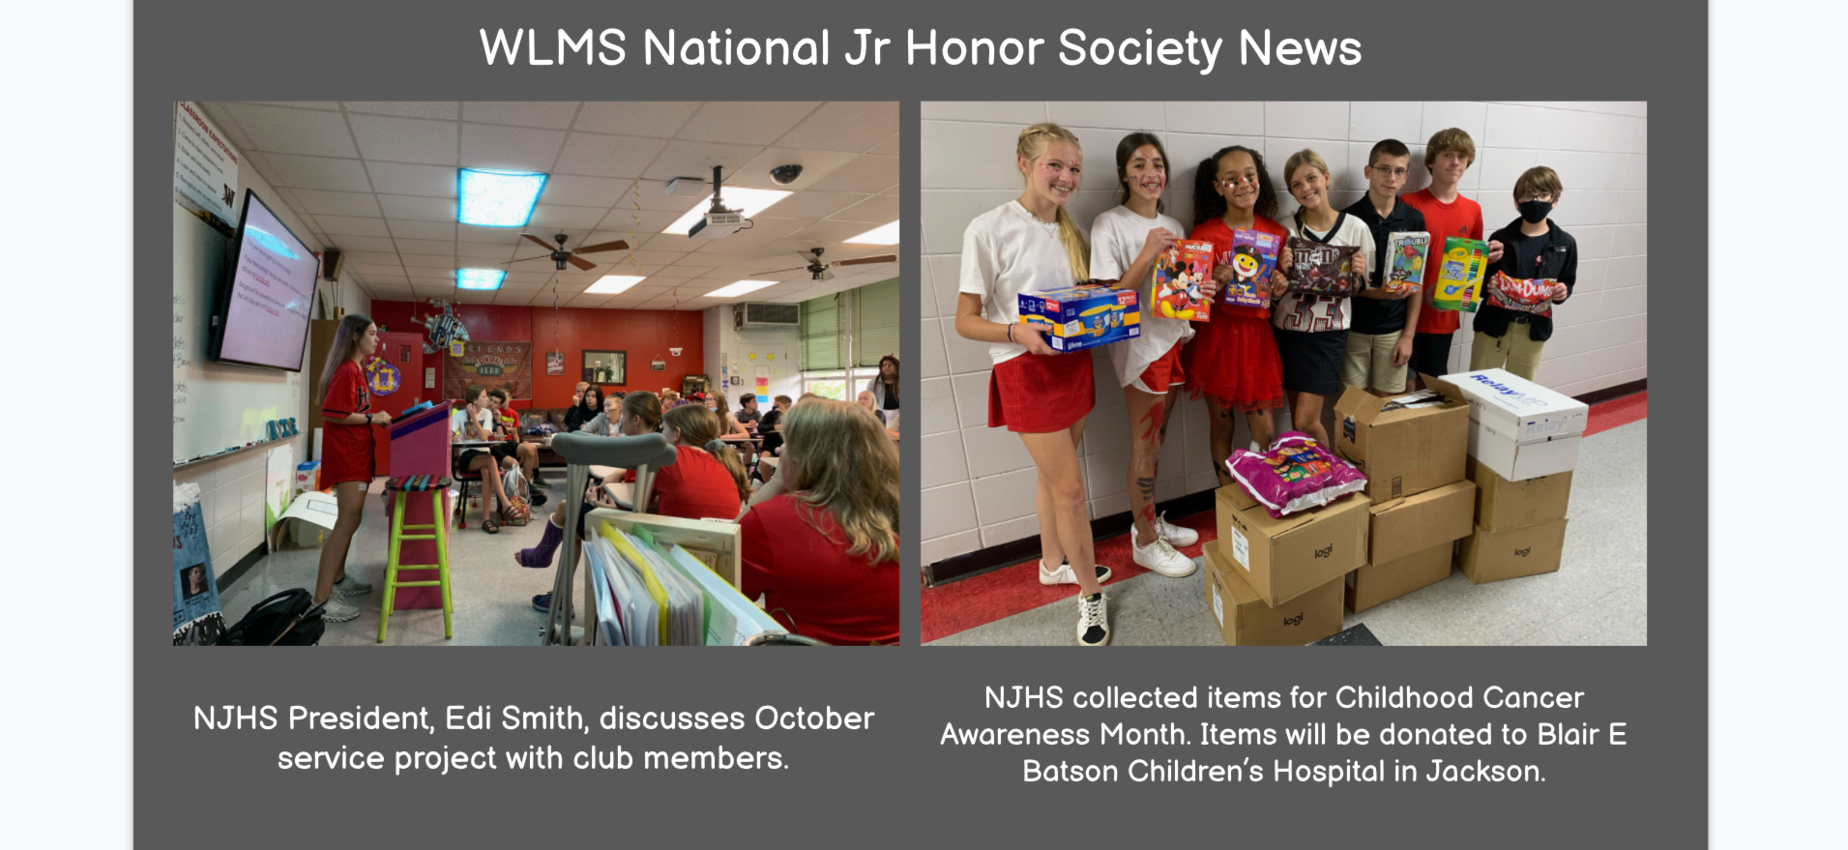 WLMS National Junior Honor Society meeting and donation pictures